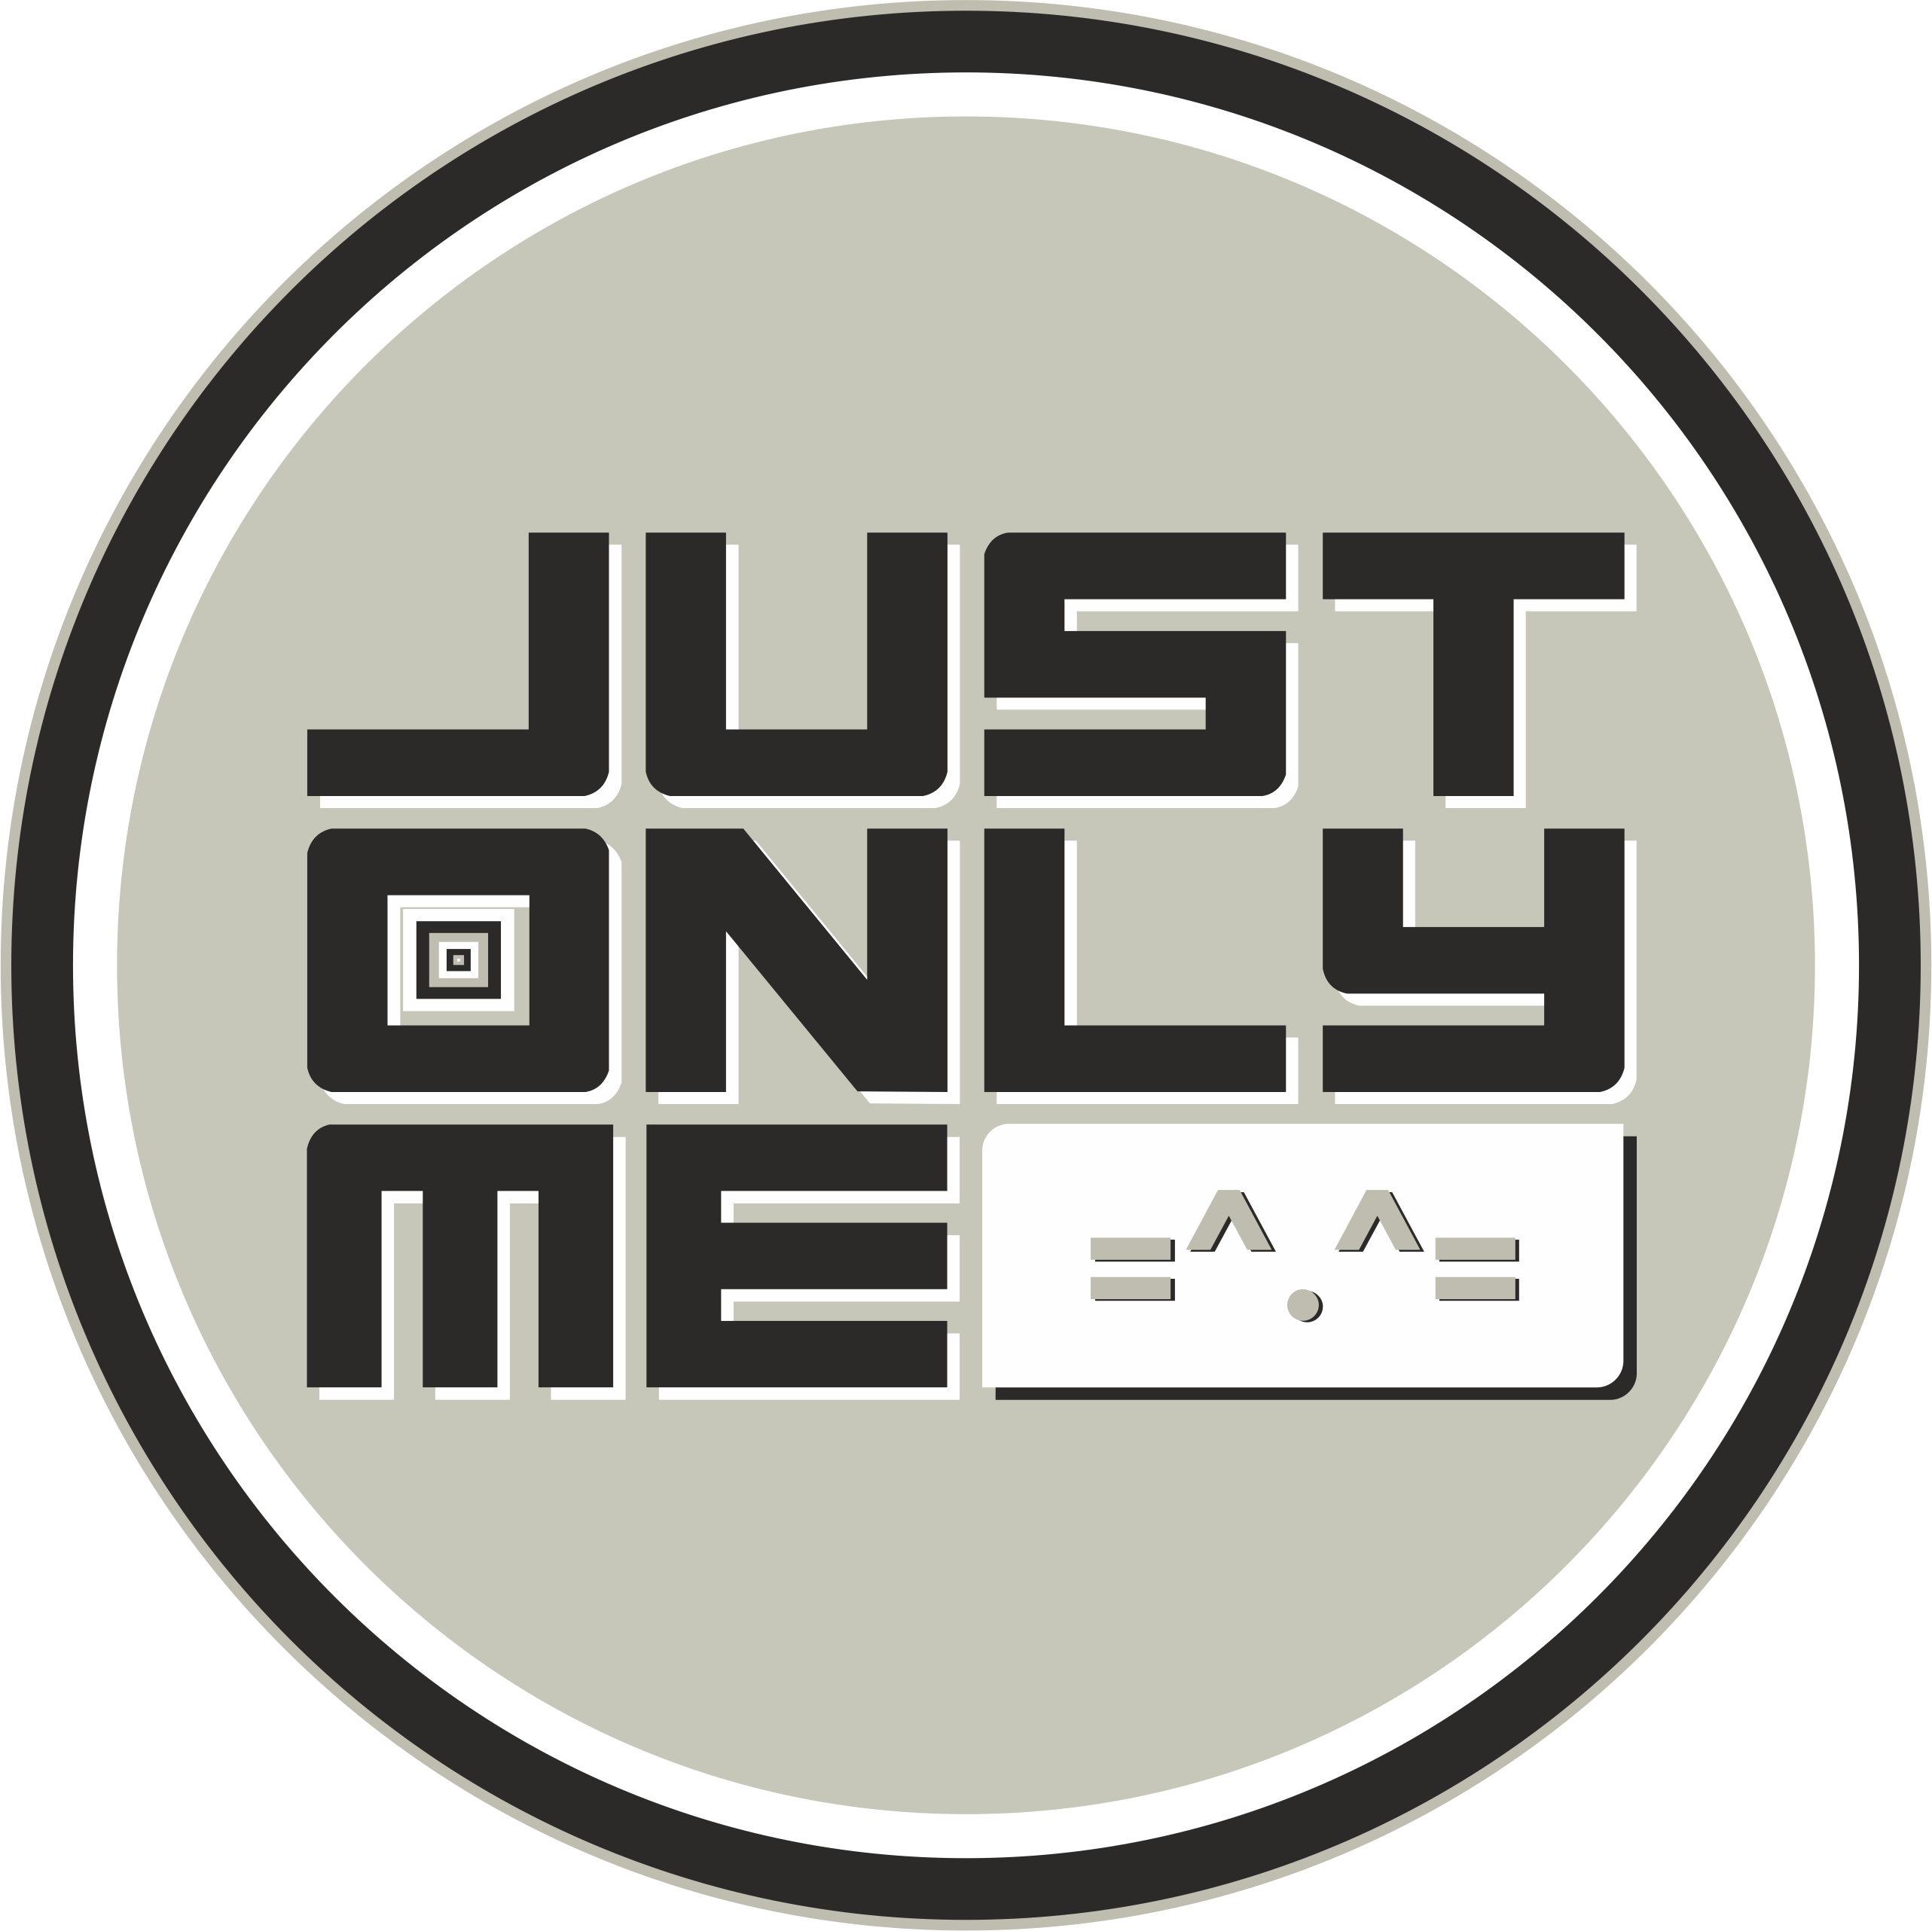 Just-only-me.com